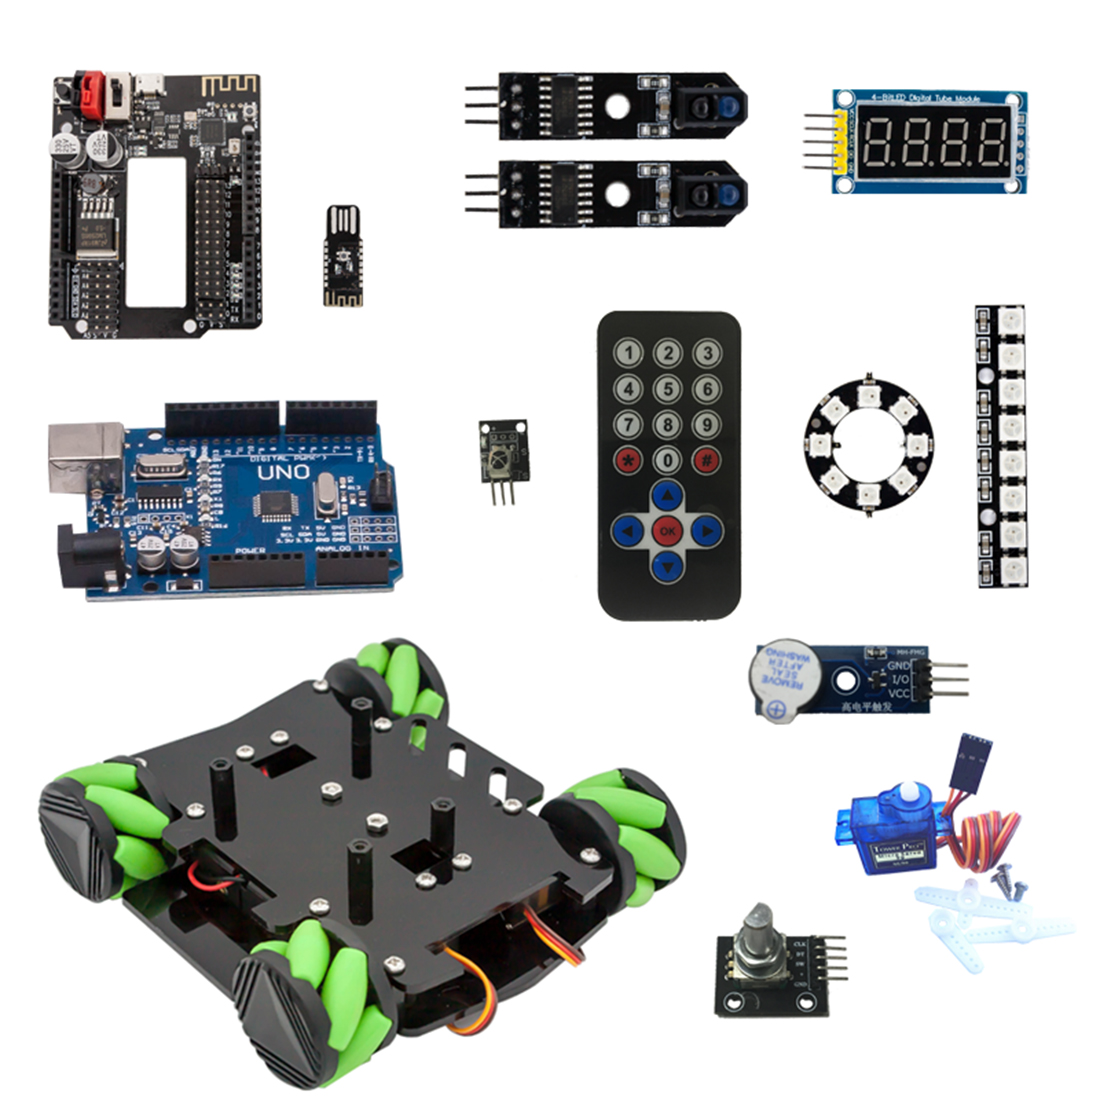 DIY Obstacle Avoidance Smart Programmable Robot Car Toys Educational Learning Kit With Mecanum Wheels For Arduino UNO - Set B